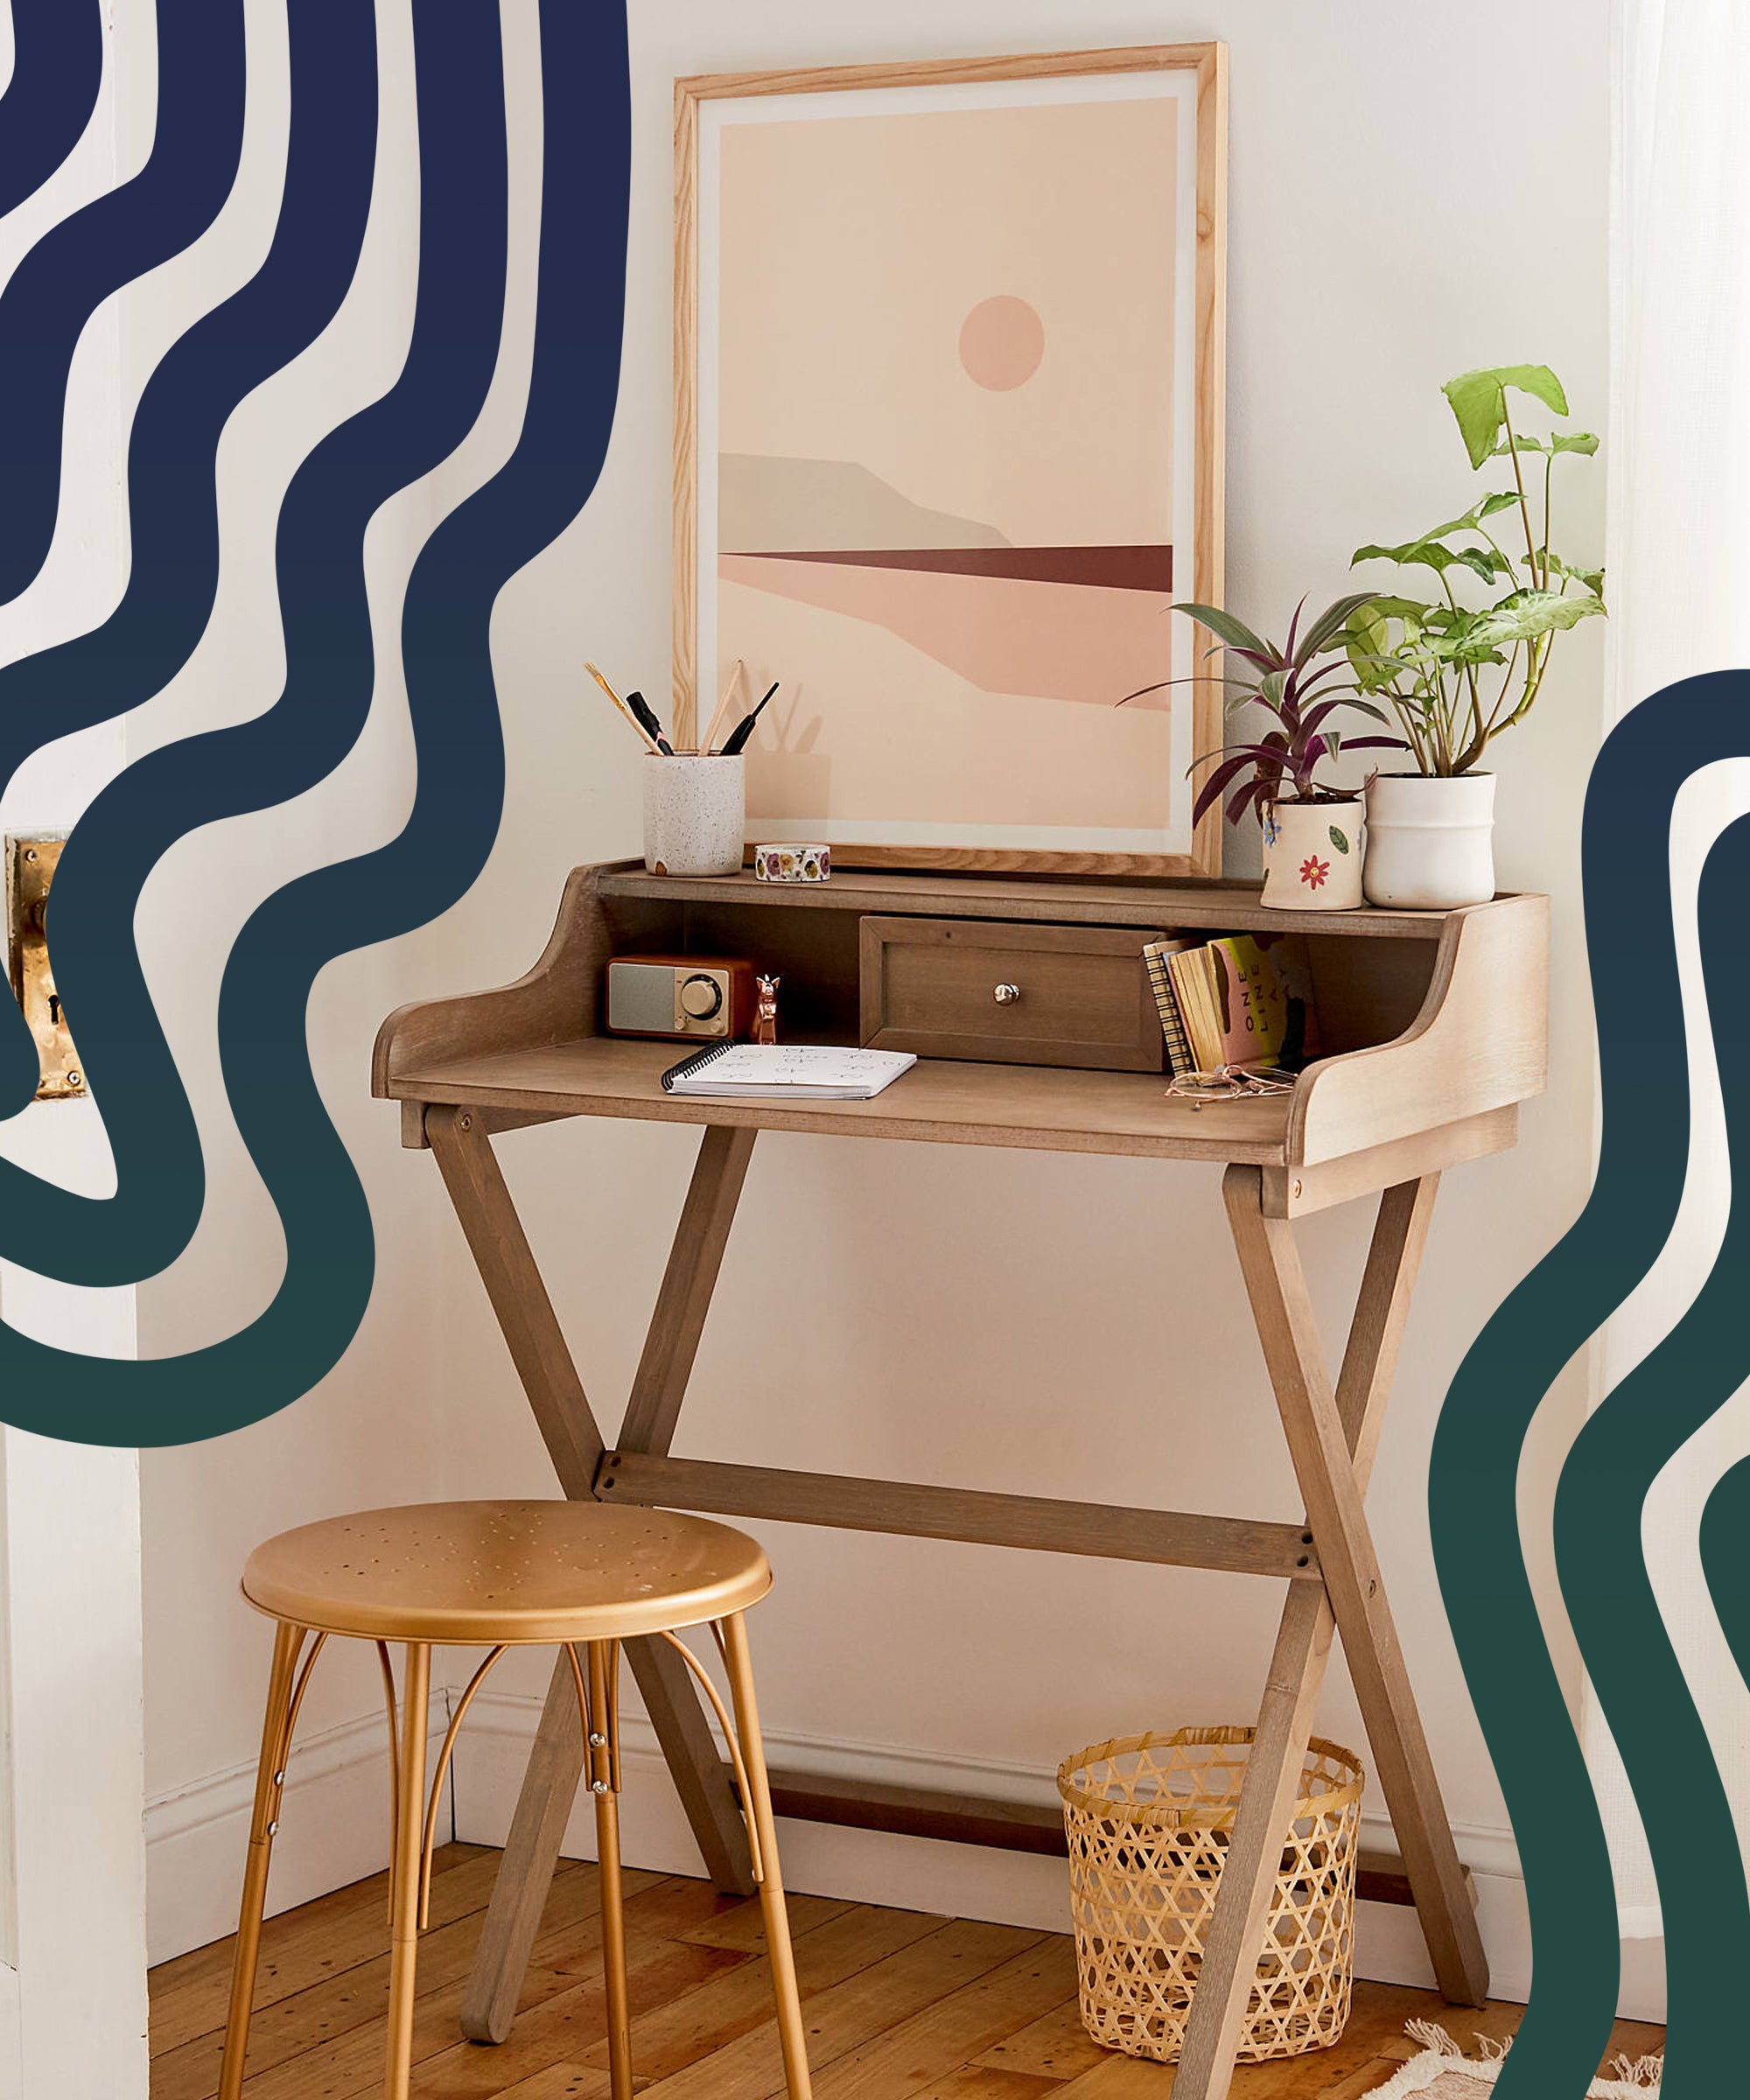 Best Desks For Small Living Spaces Homes 2021